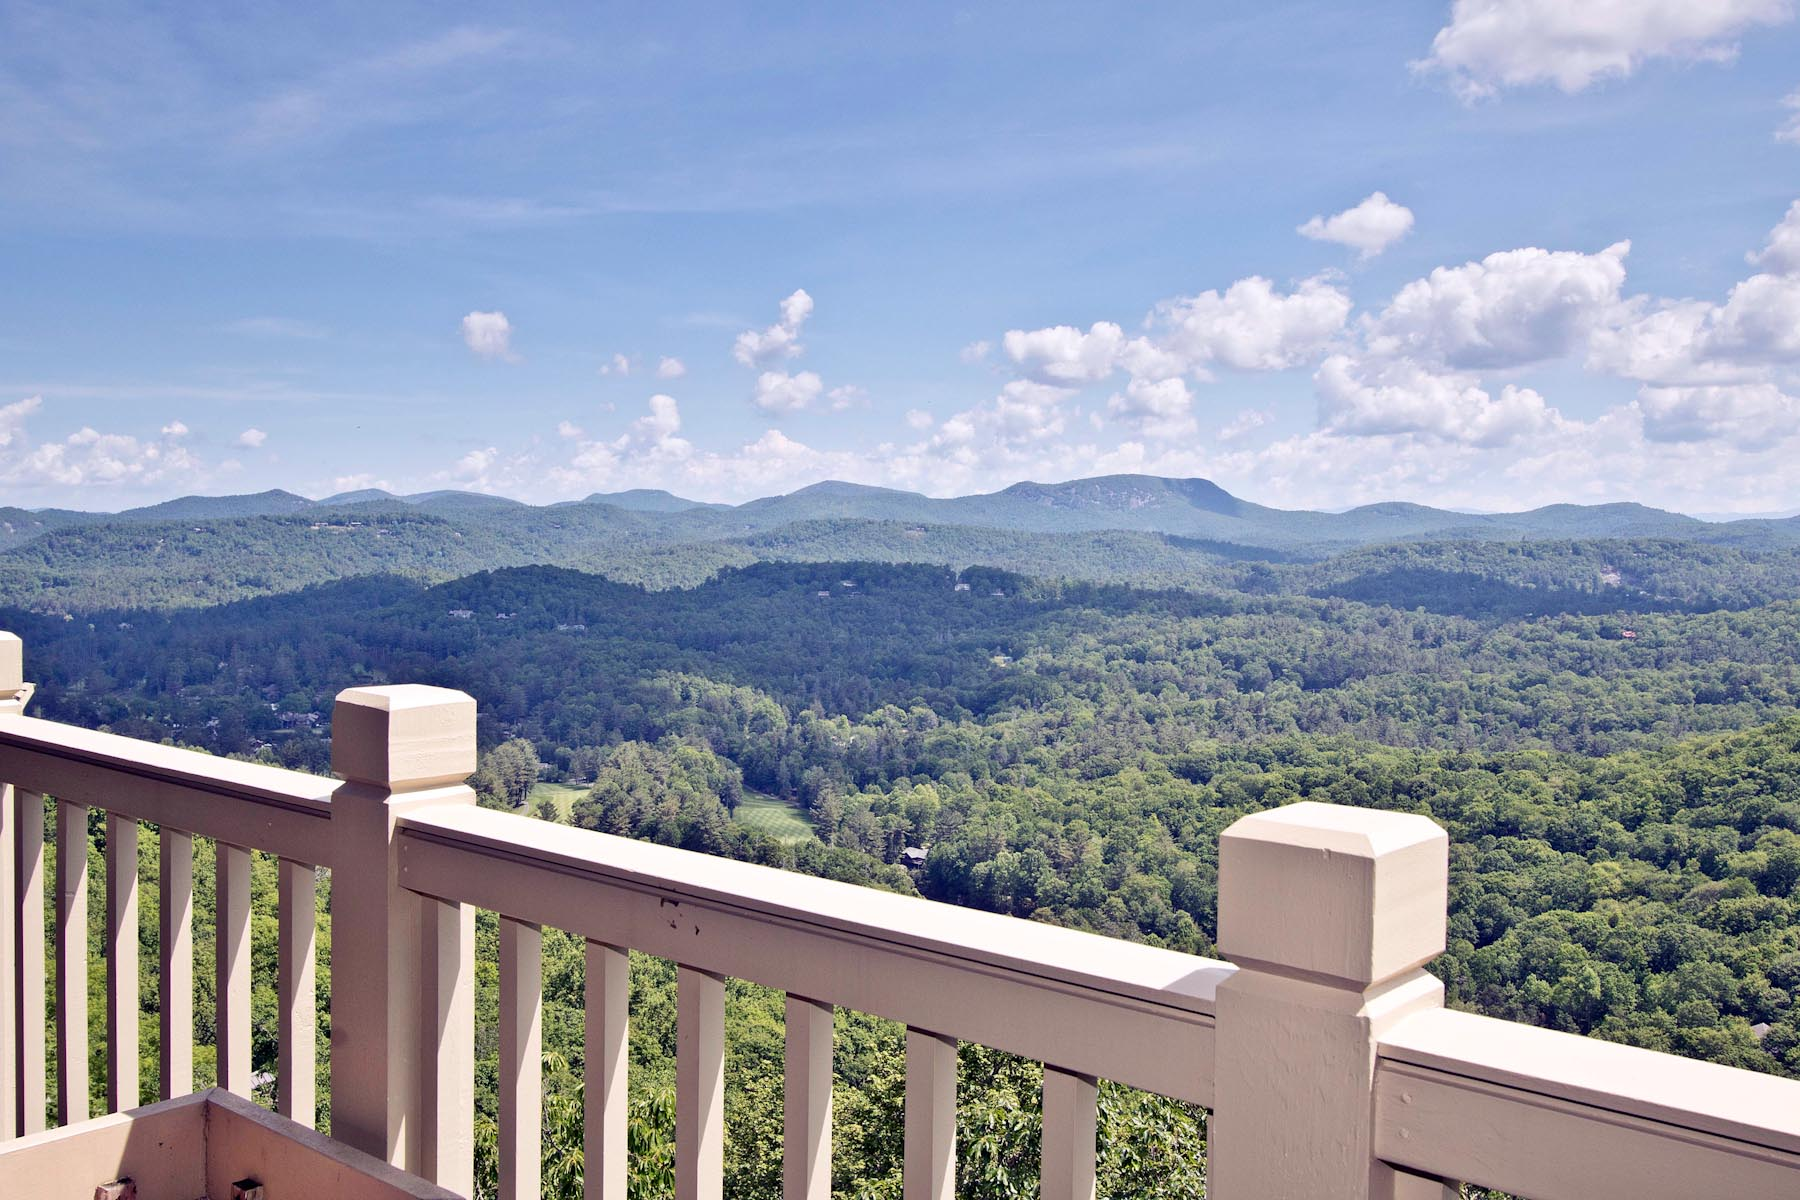 Single Family Home for Sale at 289 Upper Brushy Face Highlands, North Carolina, 28741 United States